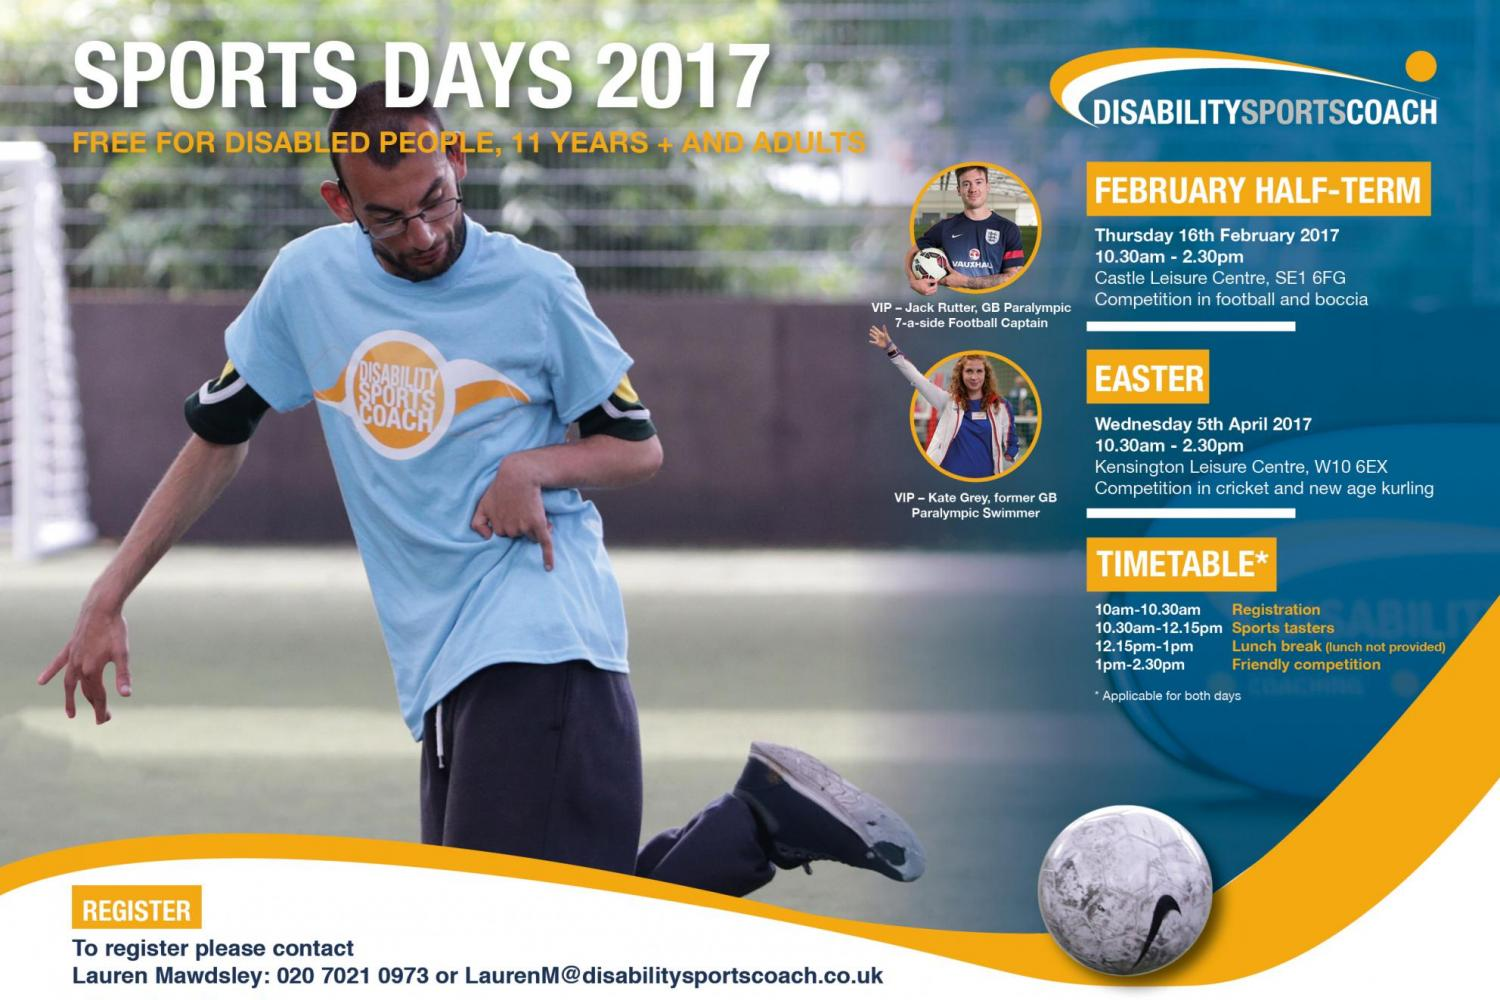 DSC February Sports Day Flyer - Jack Rutter GB Paralympian